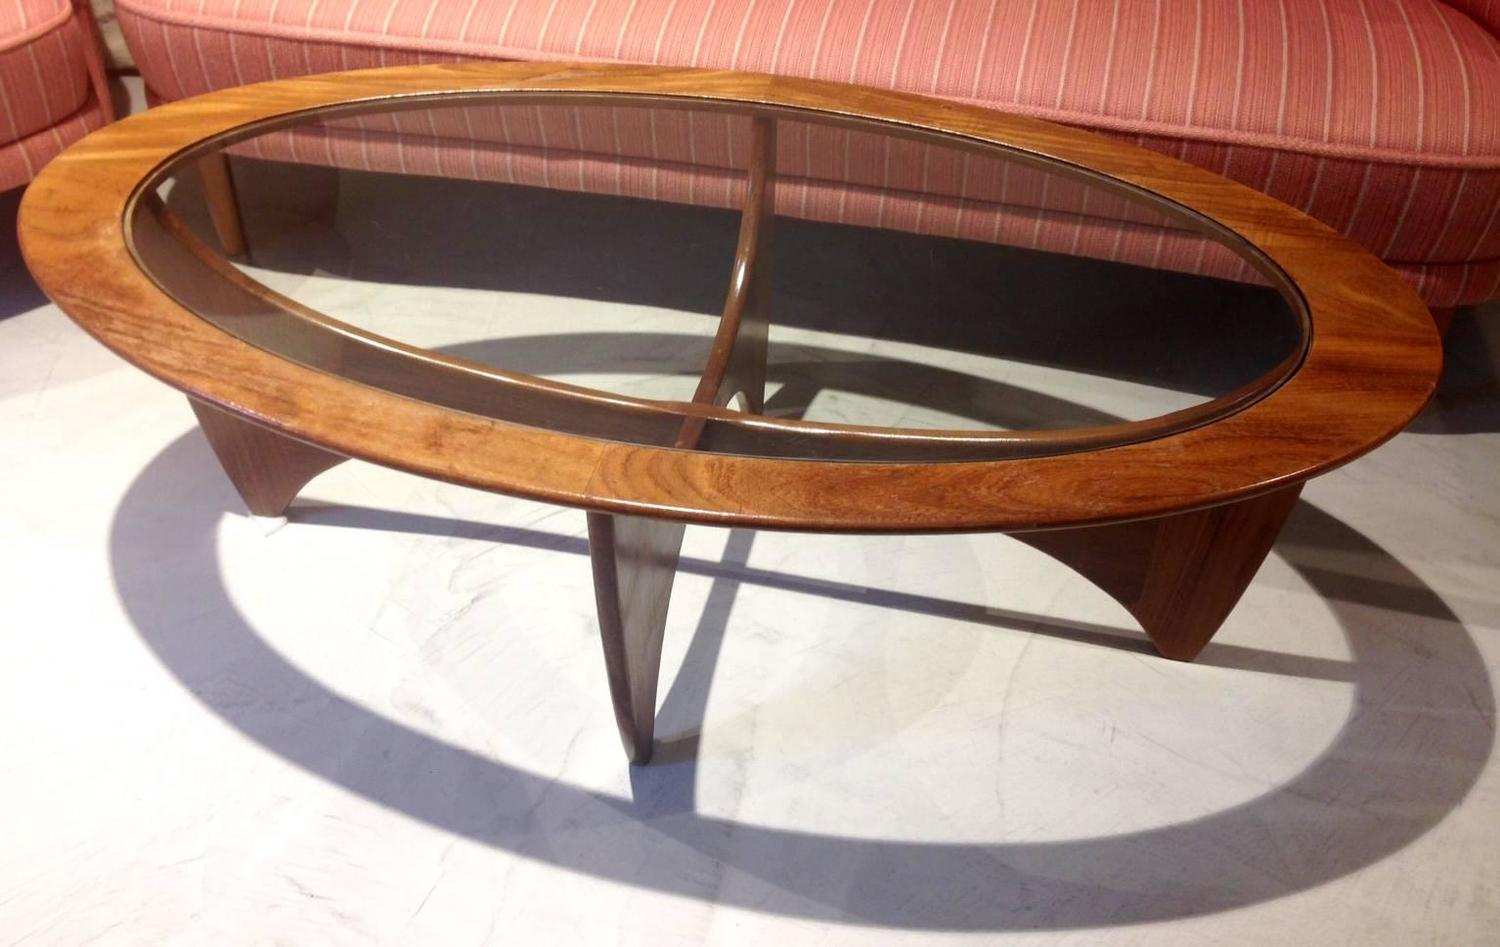 Oval teak coffee table with glass top by g plan for sale for Oval teak coffee table